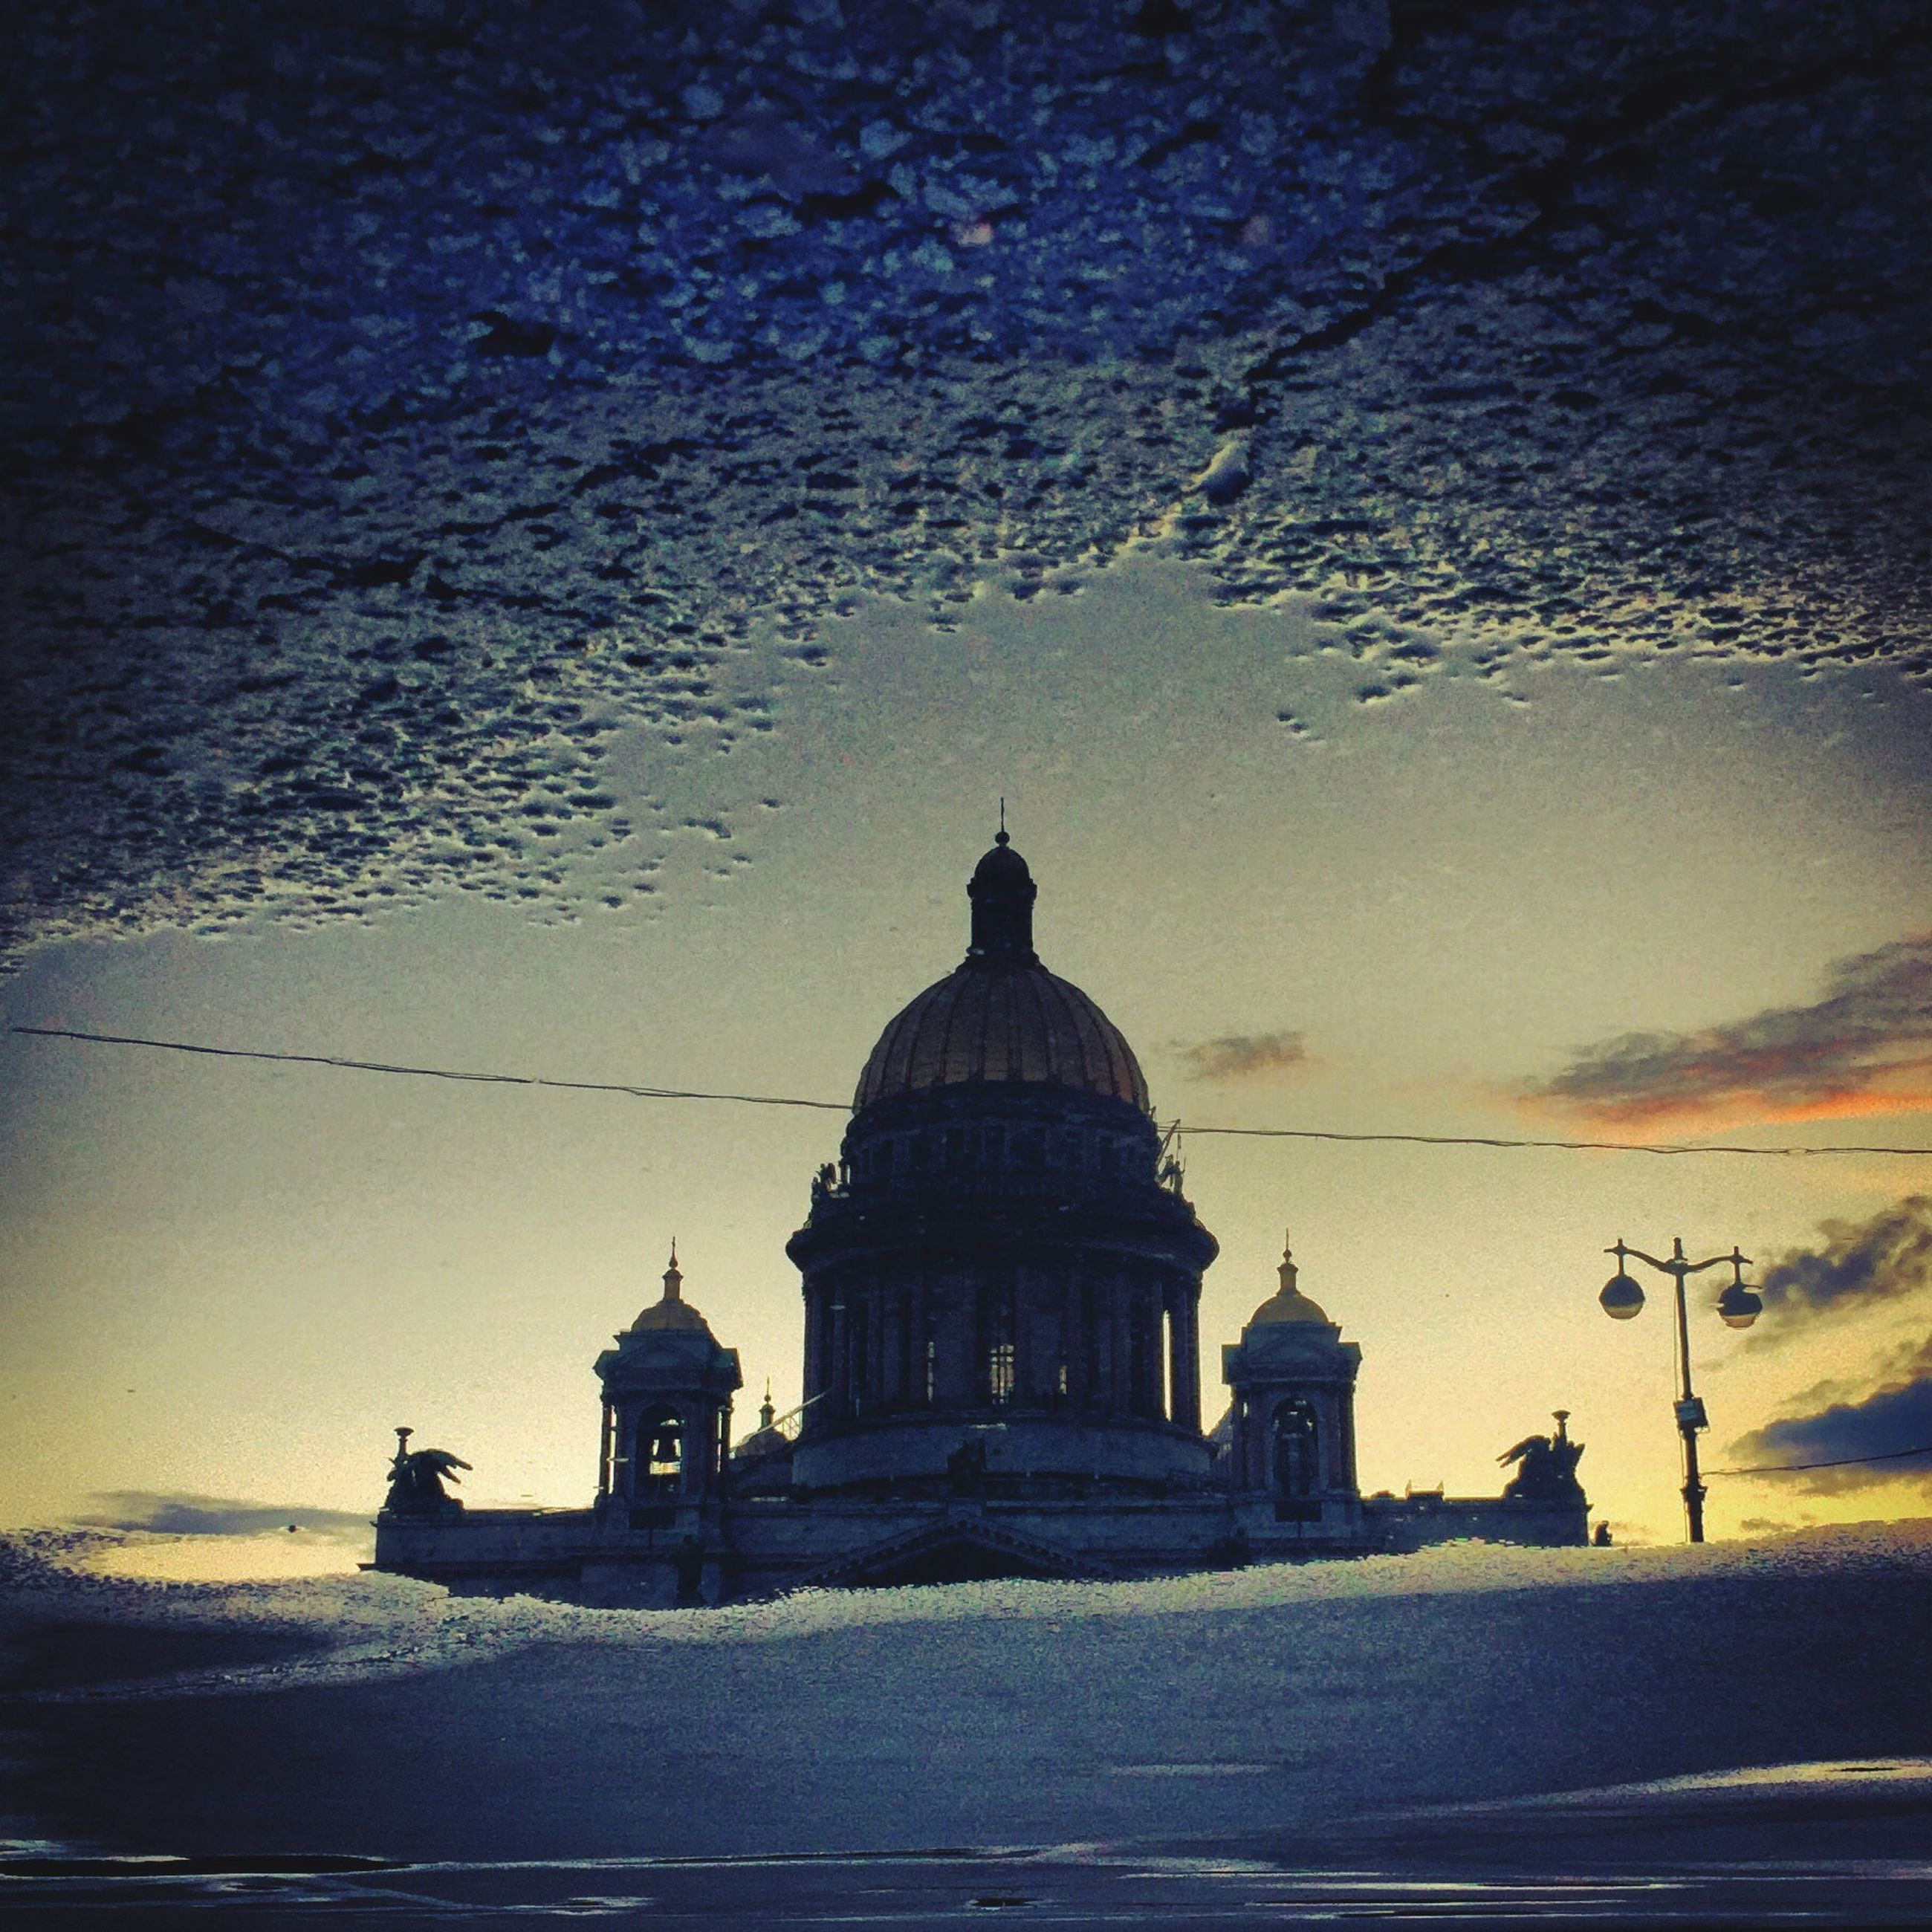 building exterior, architecture, dome, place of worship, built structure, religion, spirituality, church, sky, water, travel destinations, travel, outdoors, famous place, cathedral, statue, tourism, cloud - sky